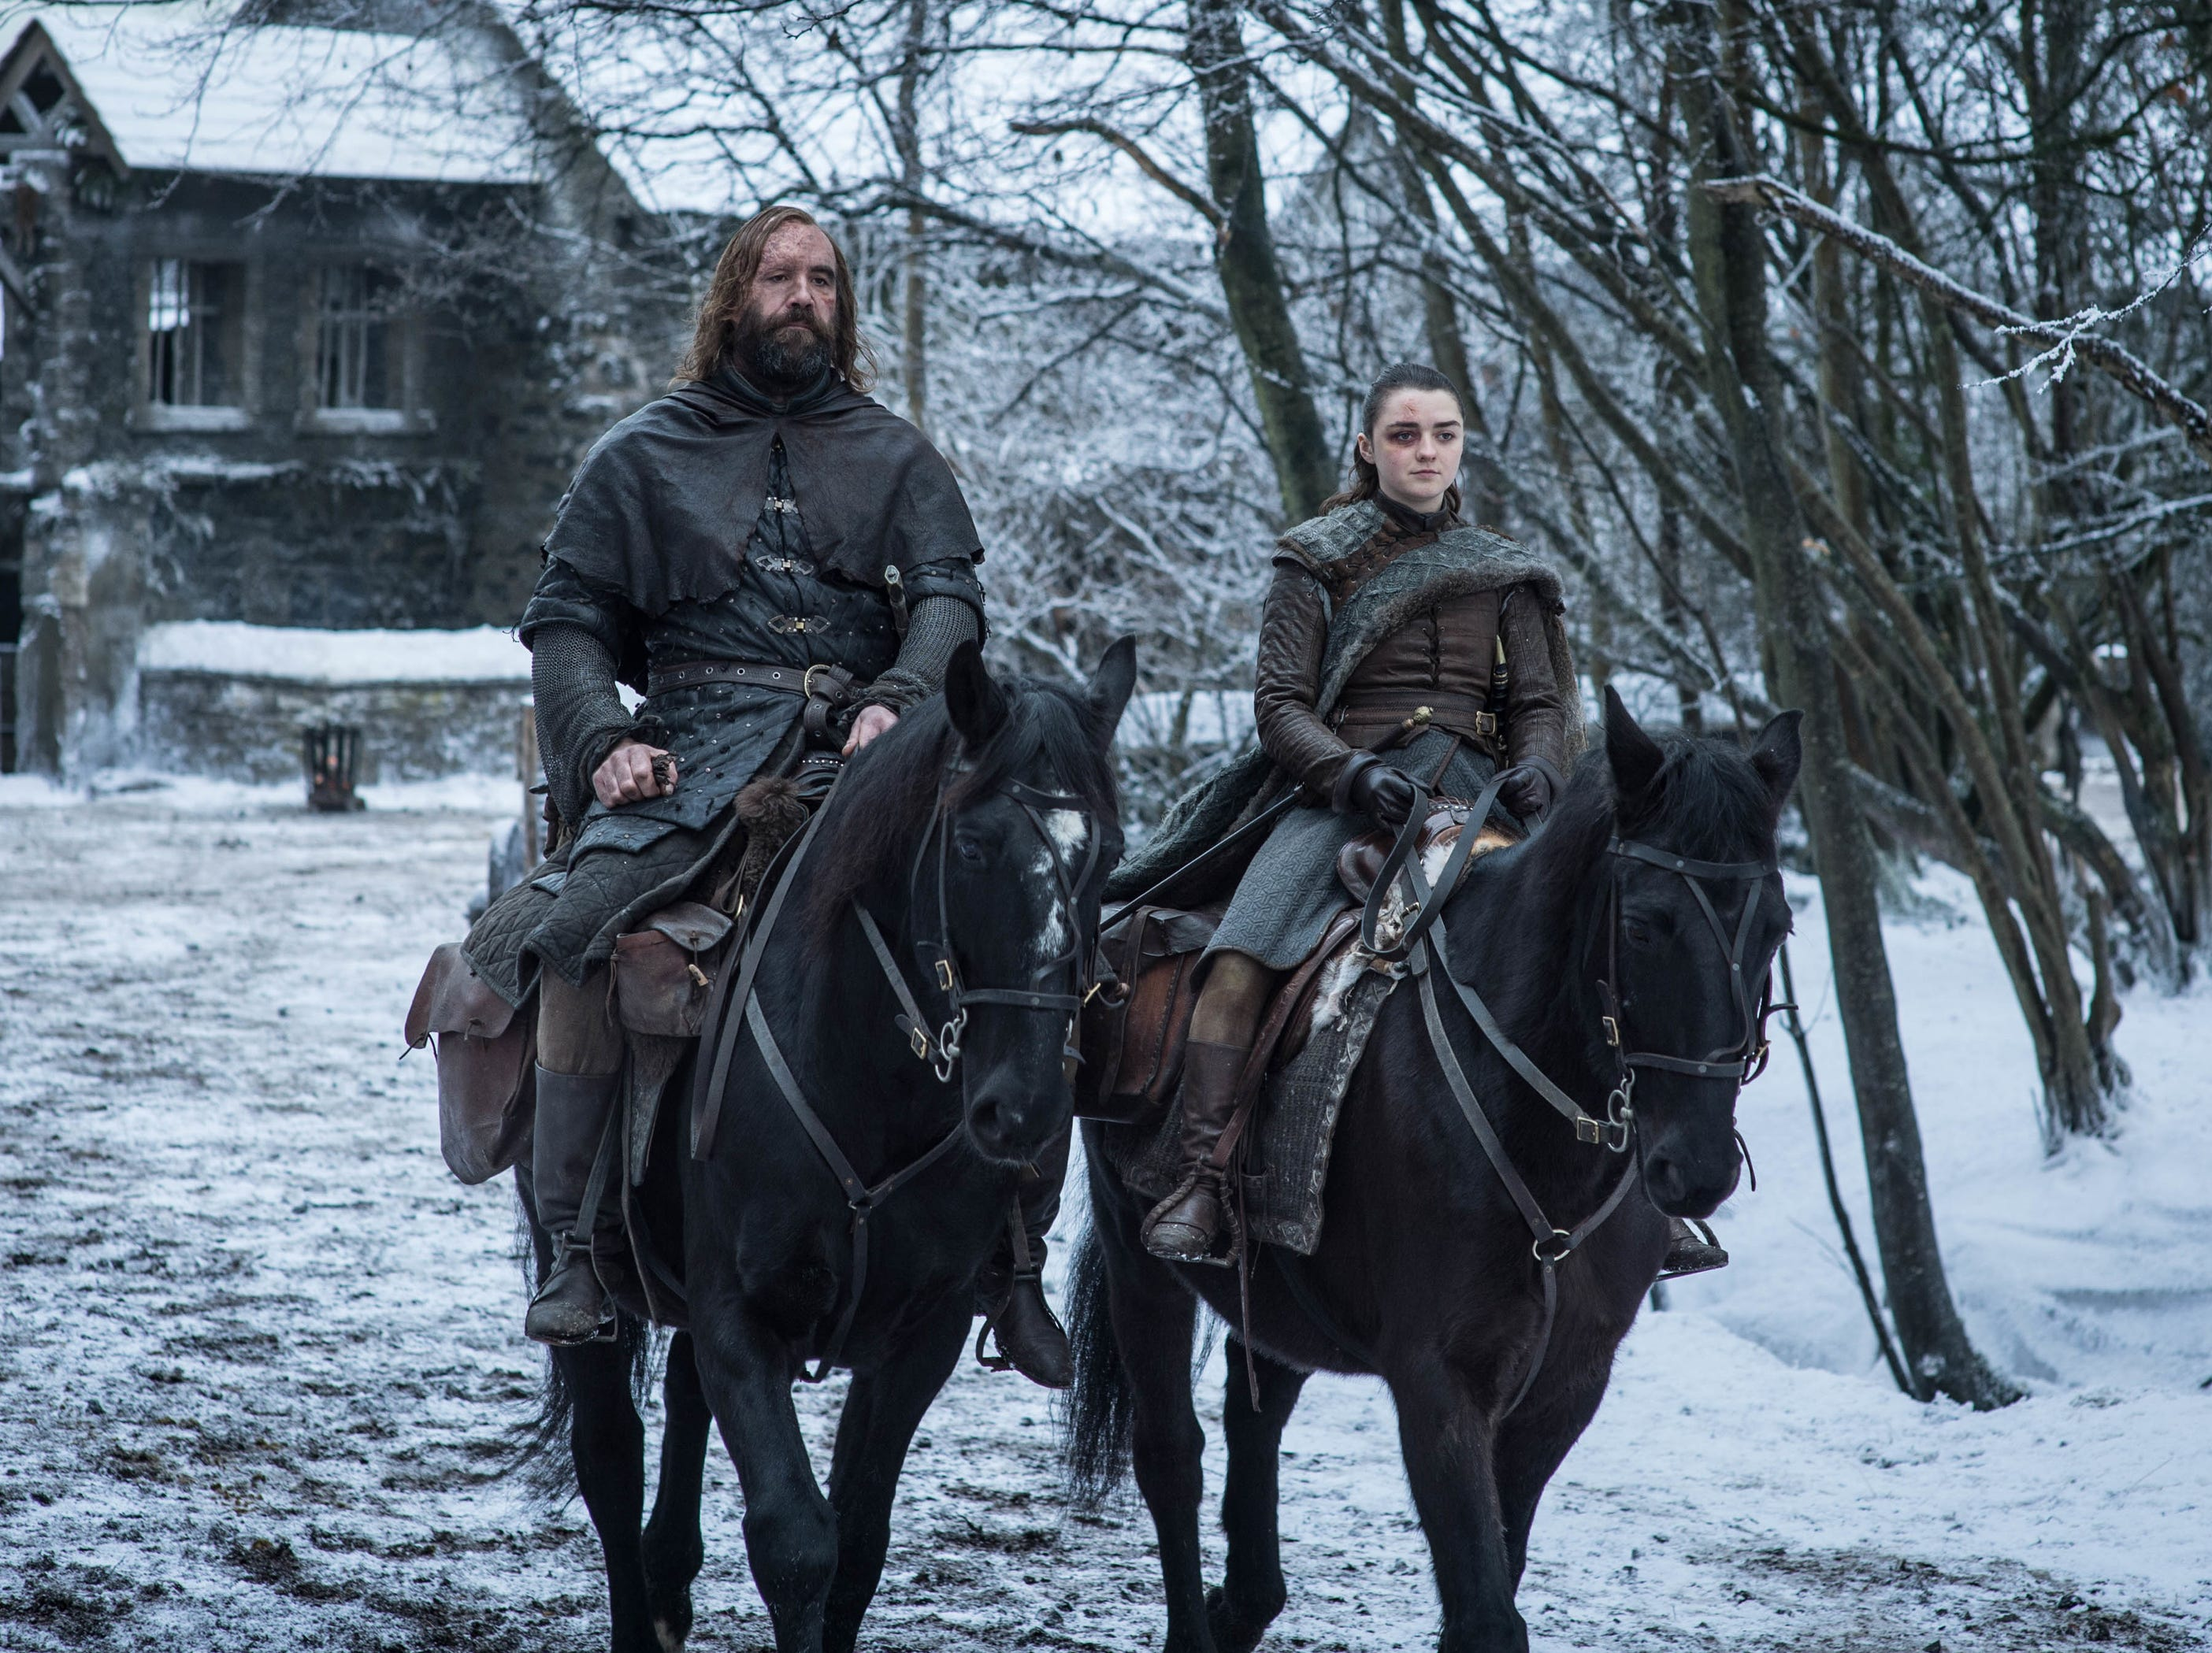 Arya (Maisie Williams), right, and The Hound (Rory McCann) are both headed out to take care of unfinished business.